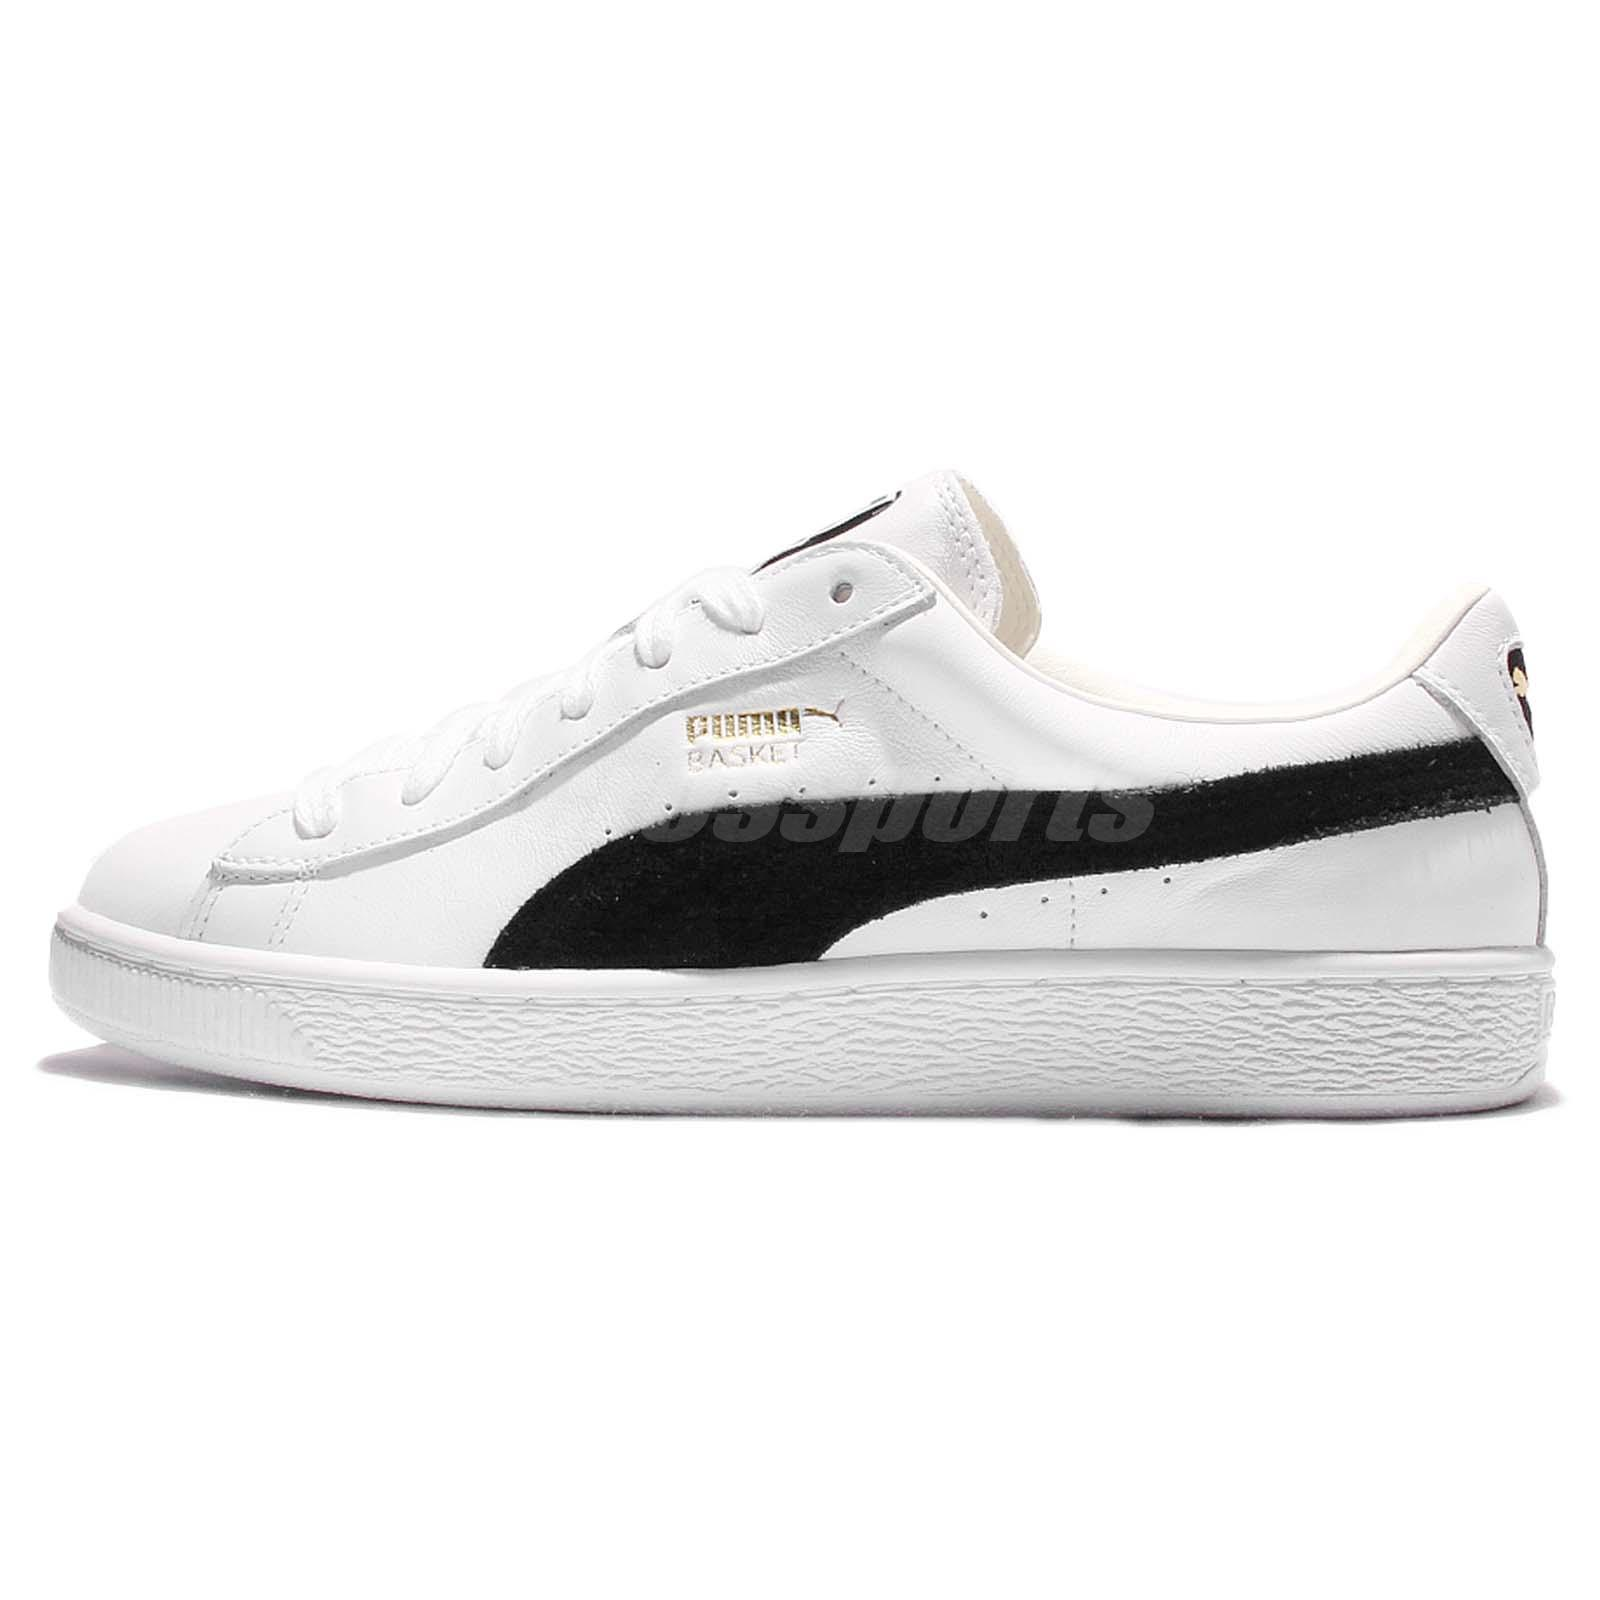 25af8f98f825 Puma Basket Classic White Black Mens Casual Shoes Sneakers Trainers  351912-03